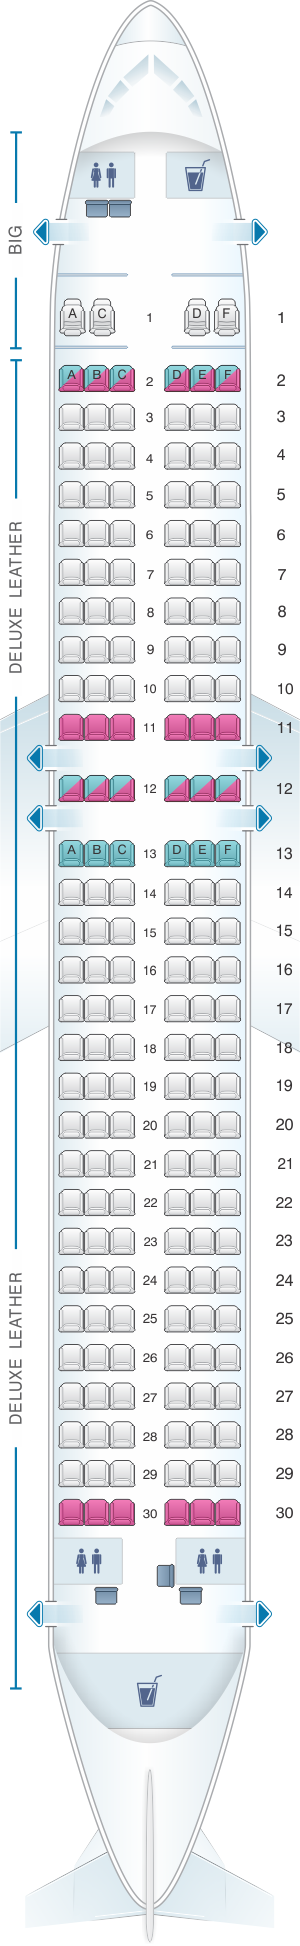 Seat map for Spirit Airlines Airbus A320 178PAX